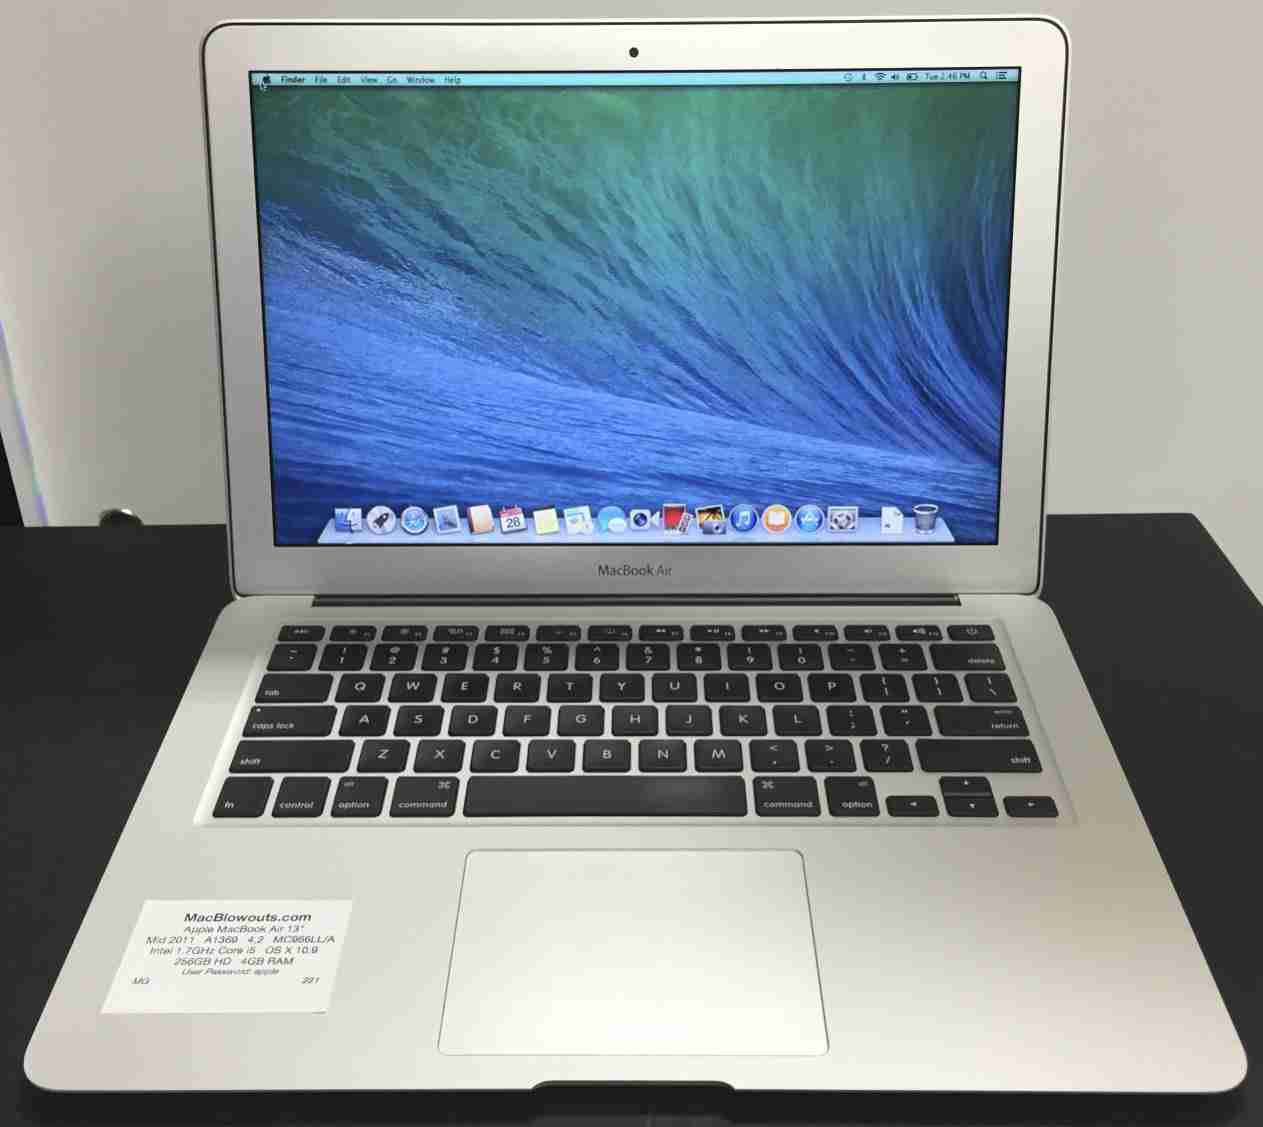 Apple MacBook Air 13″ Intel 1.6 GHz Core i5 – 64GB Hard Drive – 2GB RAM  (Mid 2011) MC968LL/A | MacBlowouts